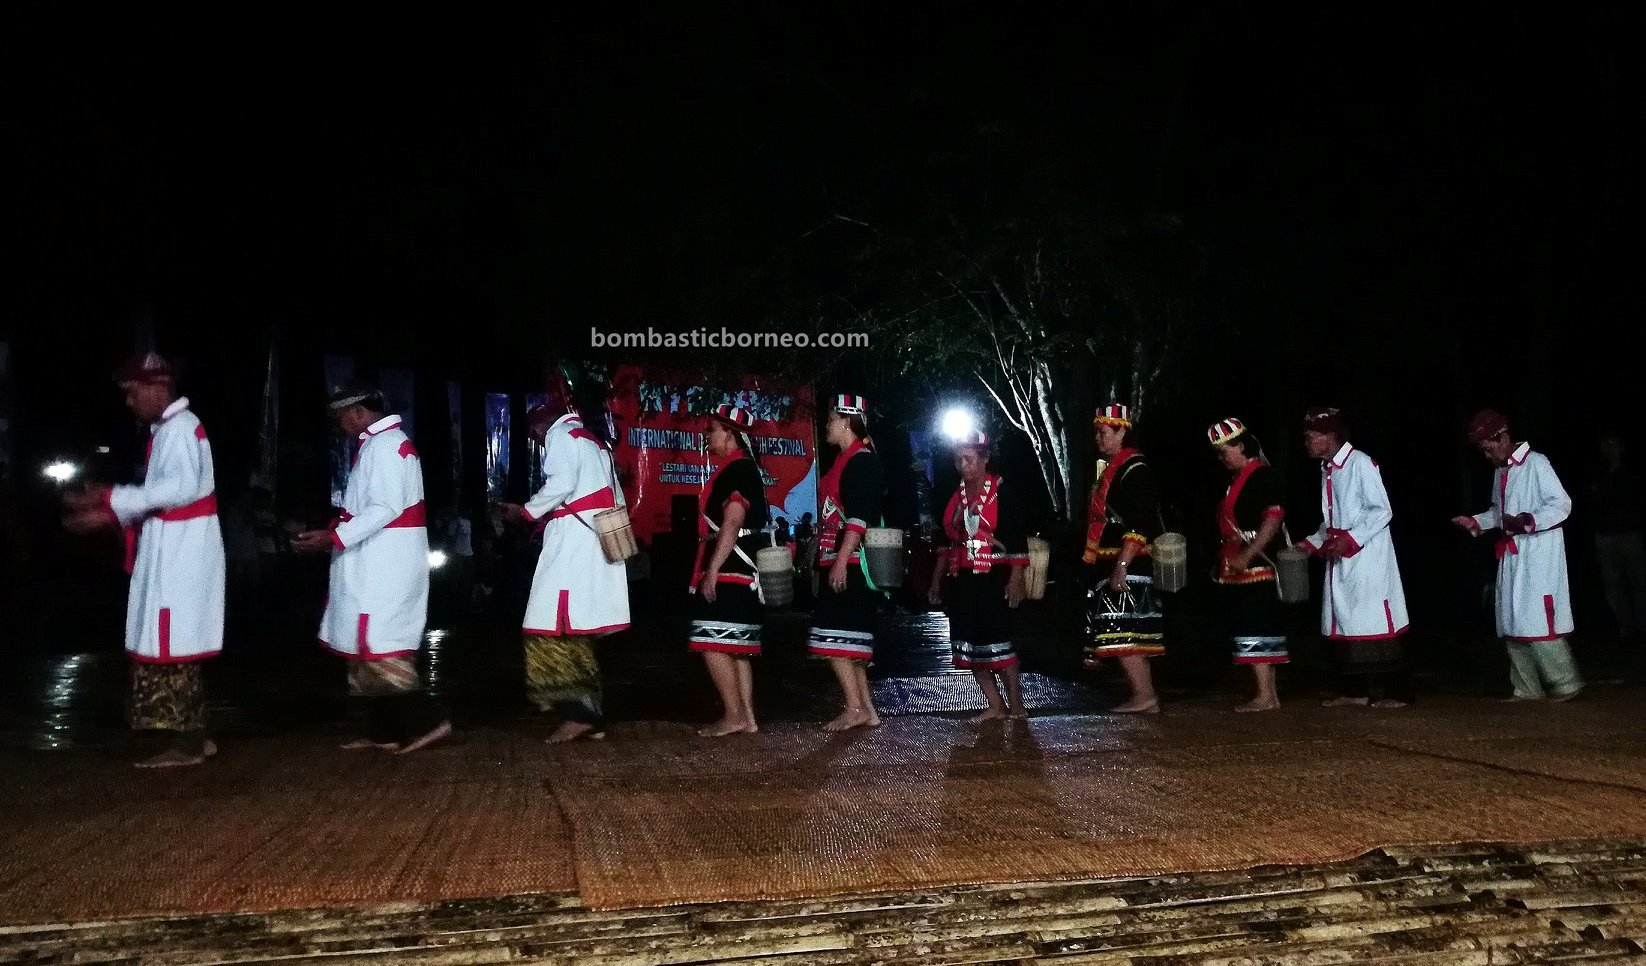 Nyobeng Sebujit, Gawai Harvest Festival, authentic, backpackers, Bengkayang, Indonesia, Siding, ethnic, tribal, tourism, tourist attraction, travel guide, Trans Border, Borneo, 穿越婆罗洲游踪, 西加里曼丹丰收节日,